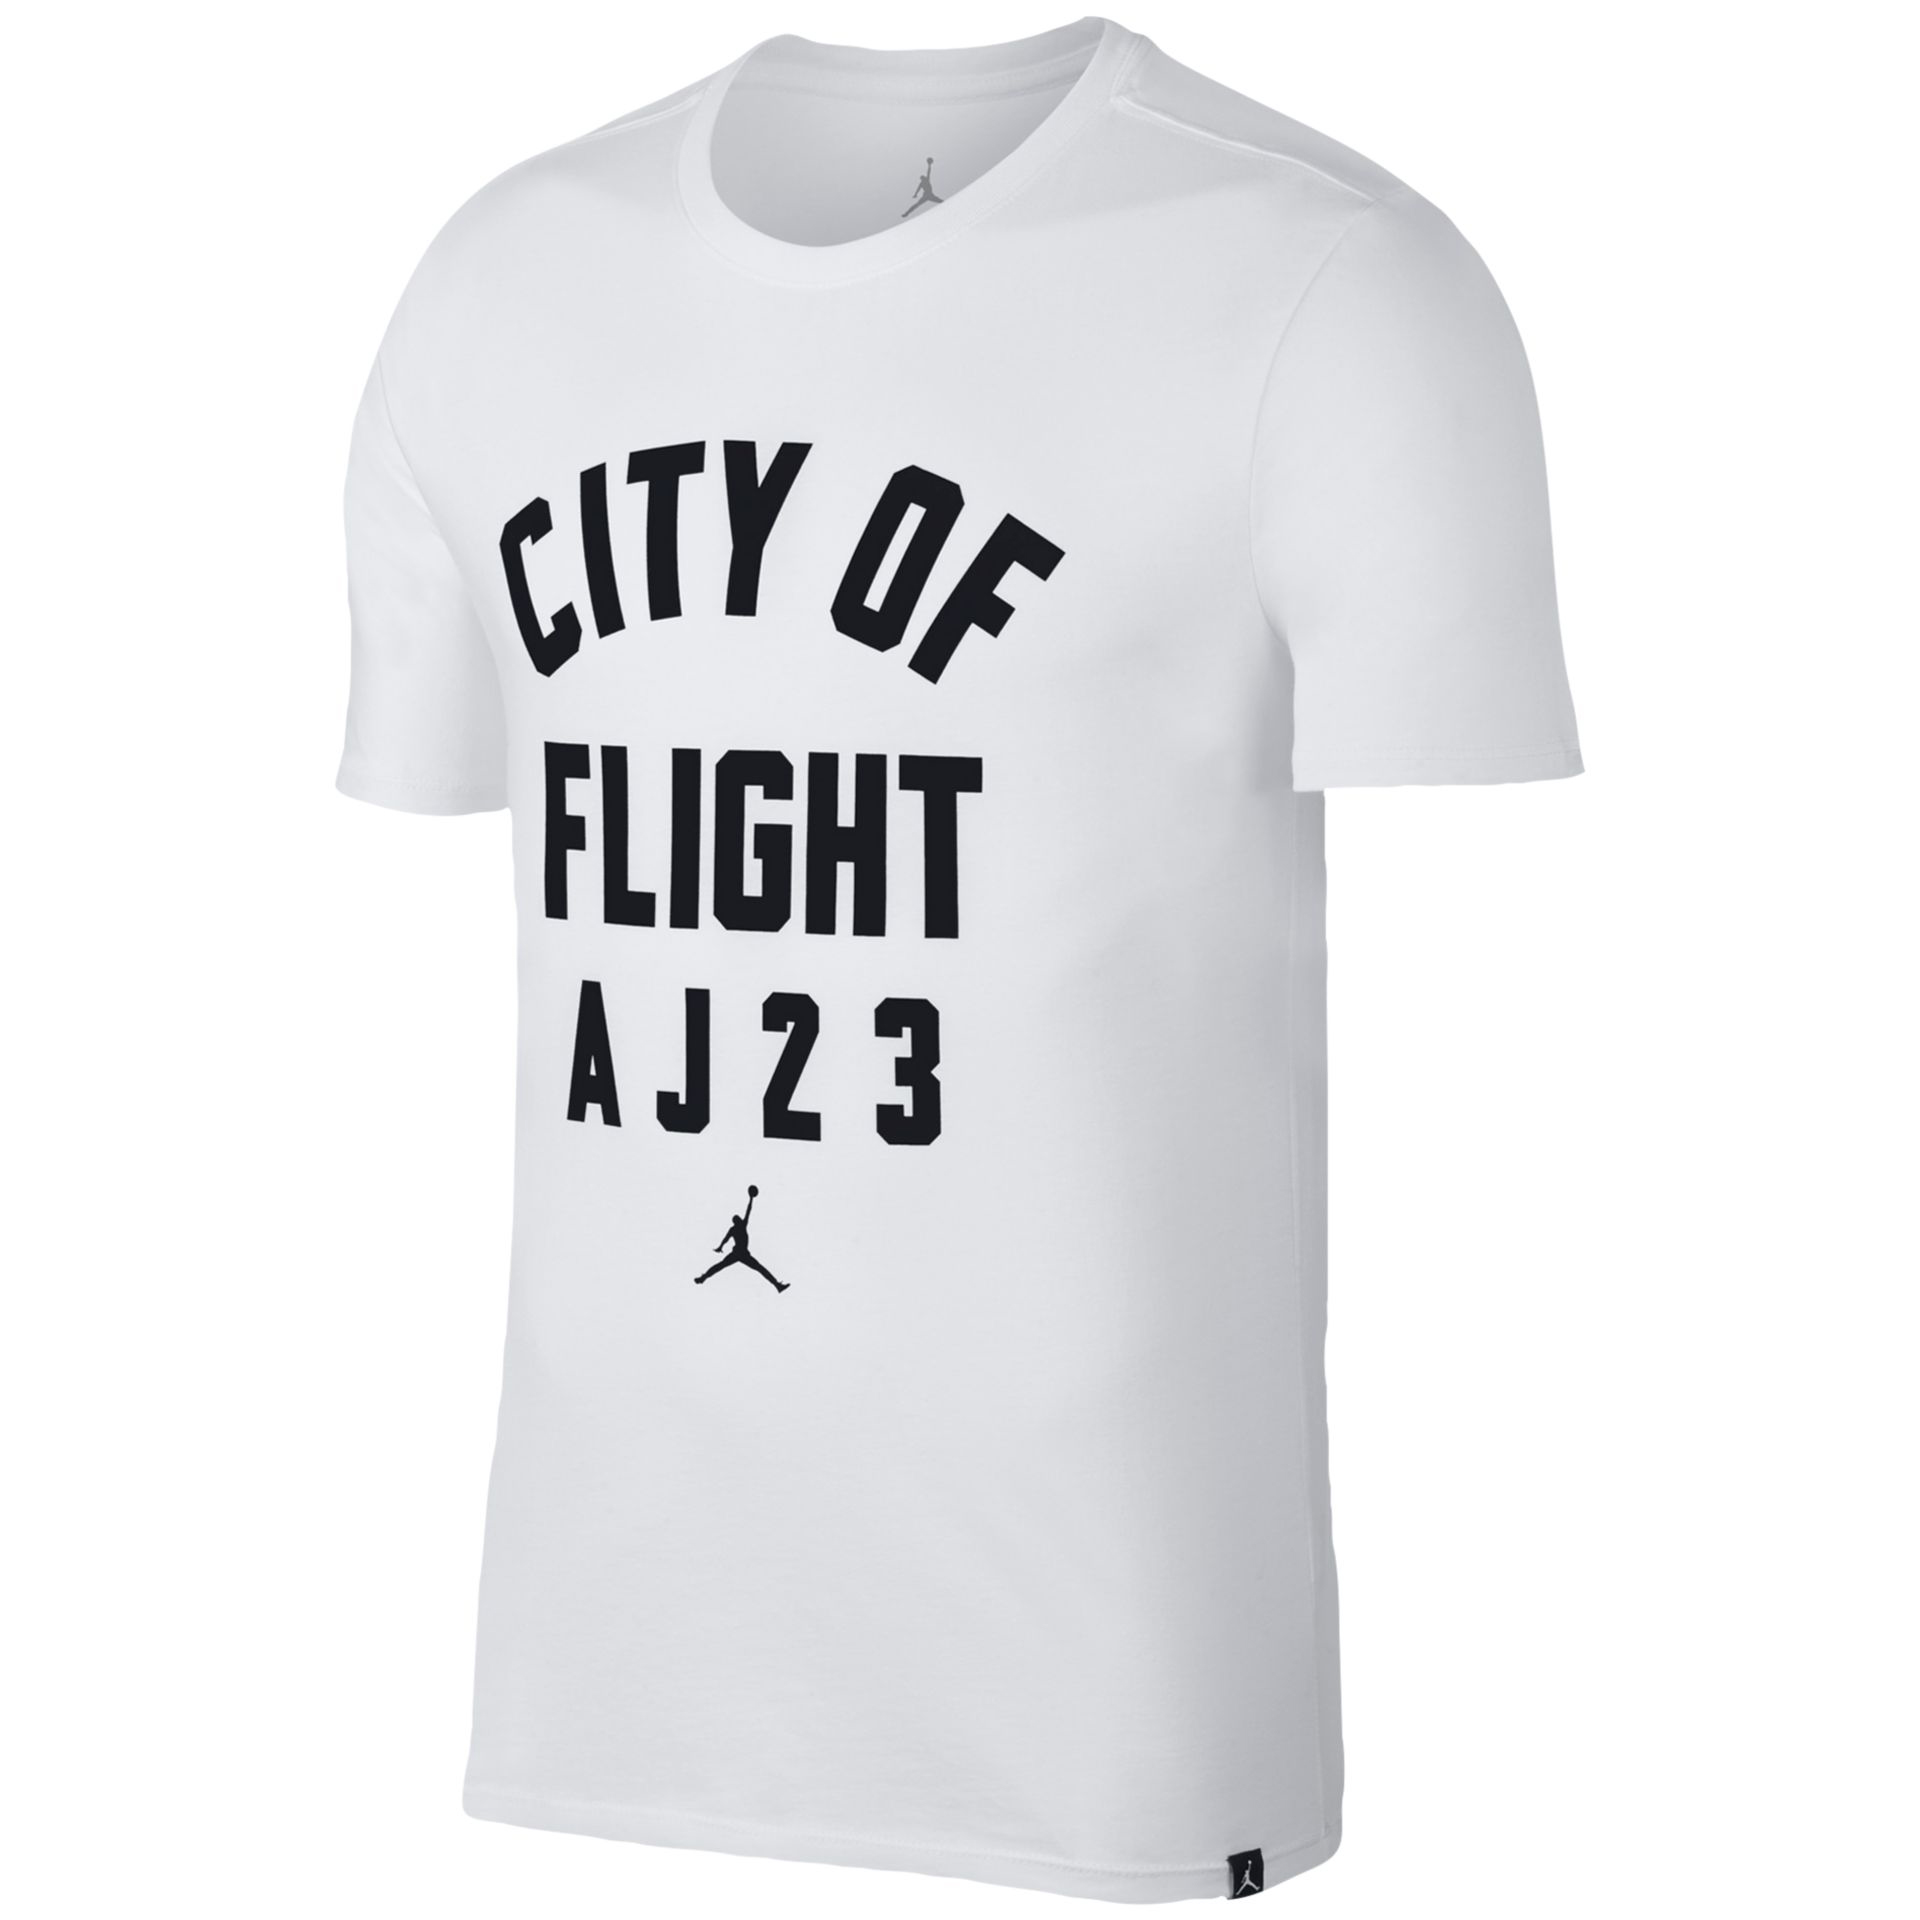 jordan-9-city-of-flight-la-all-star-shirt-white